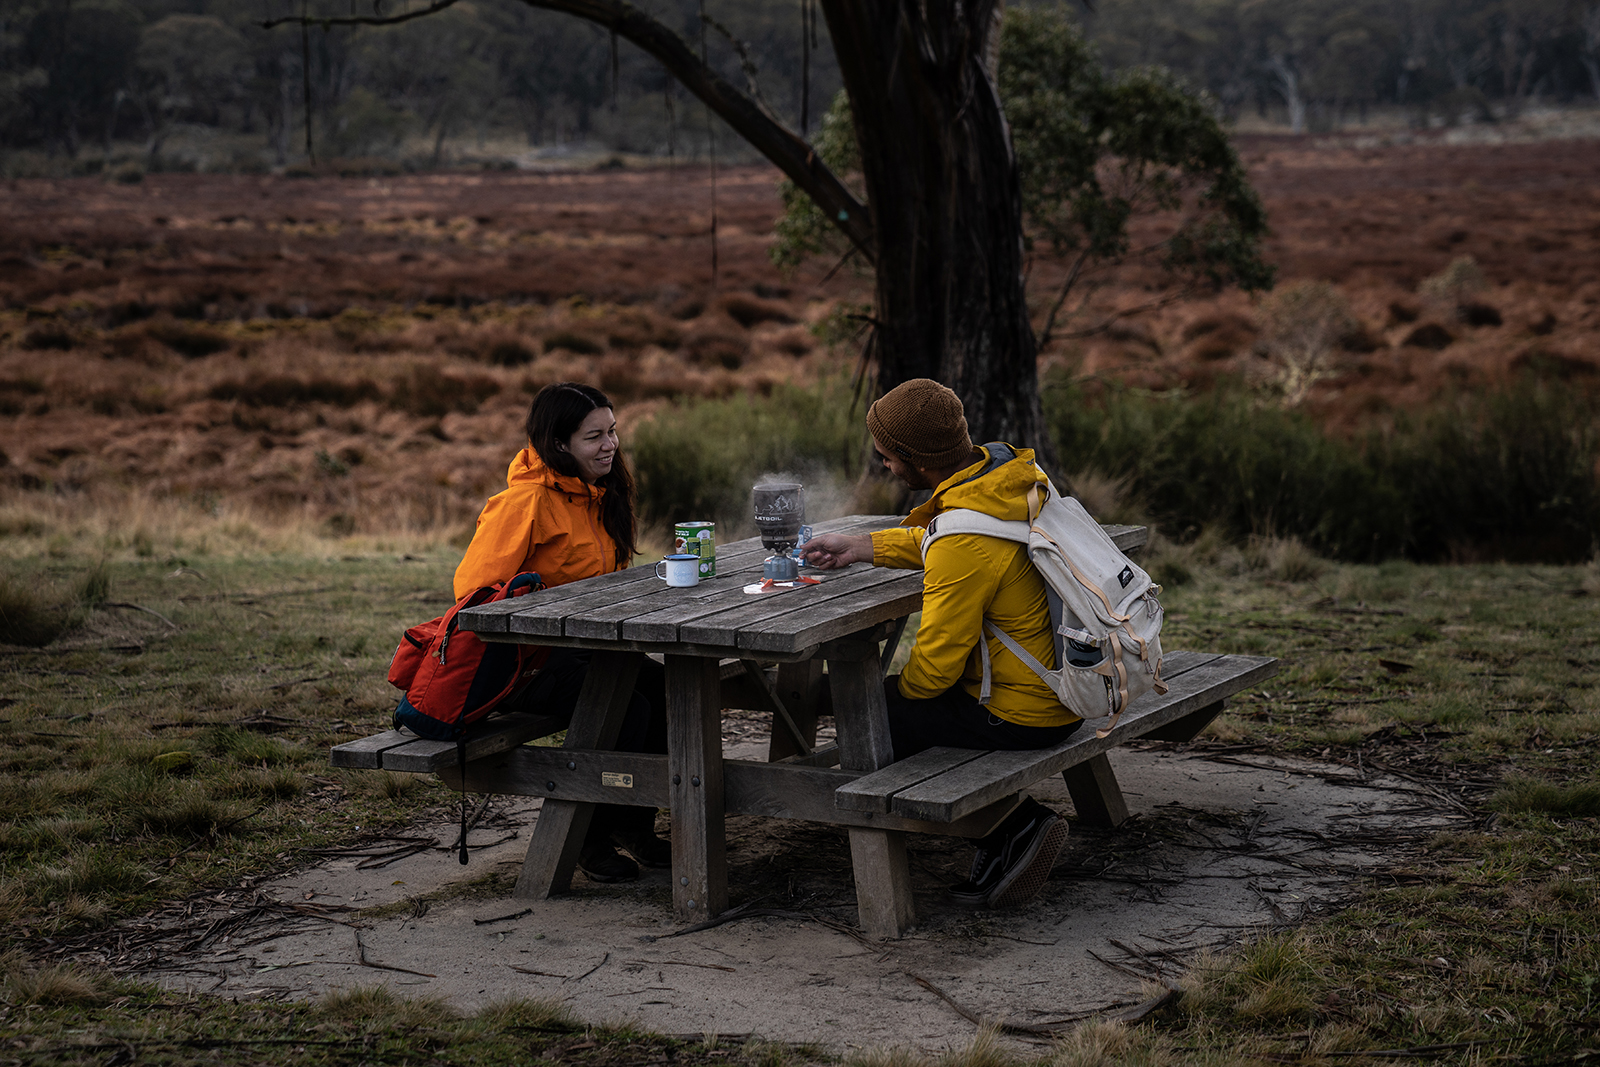 Two people enjoying a hot drink on a picnic bench